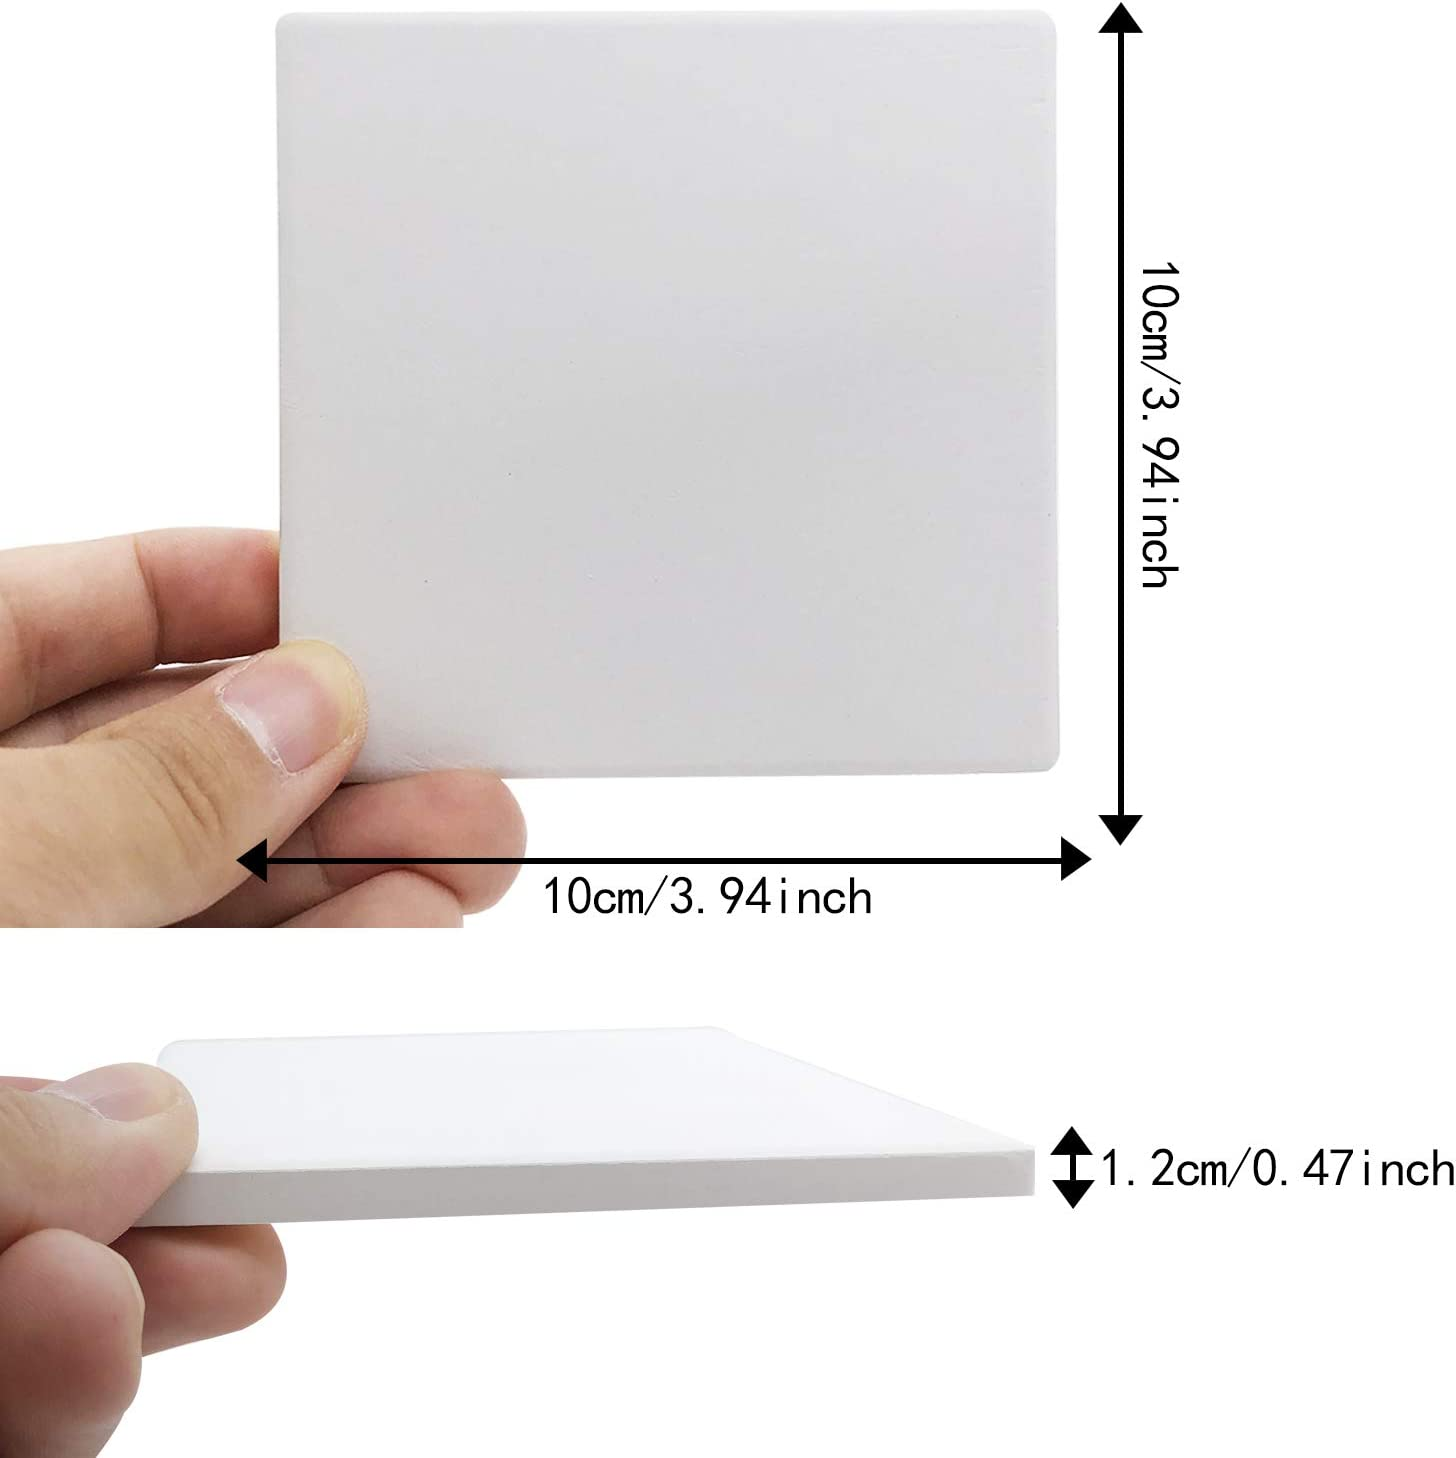 Unglazed Ceramic Tiles for Crafts 8PCS Un-Glazed White Tiles with Cork Backing Pads Square Use with Alcohol Ink or Acrylic Pouring Make Your Own DIY Coasters